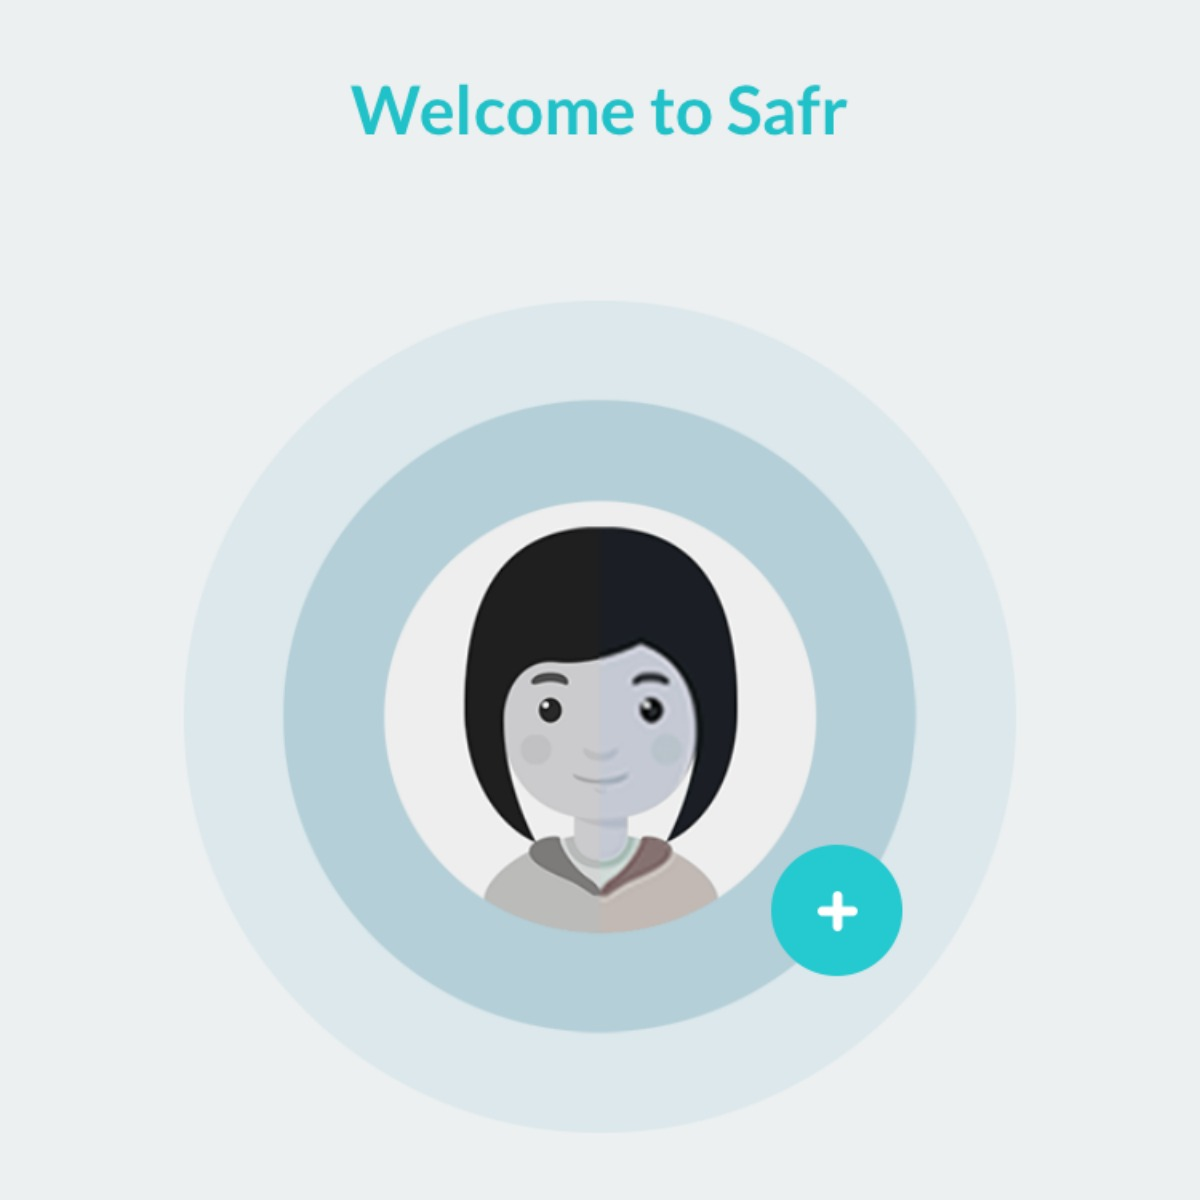 Safr welcome